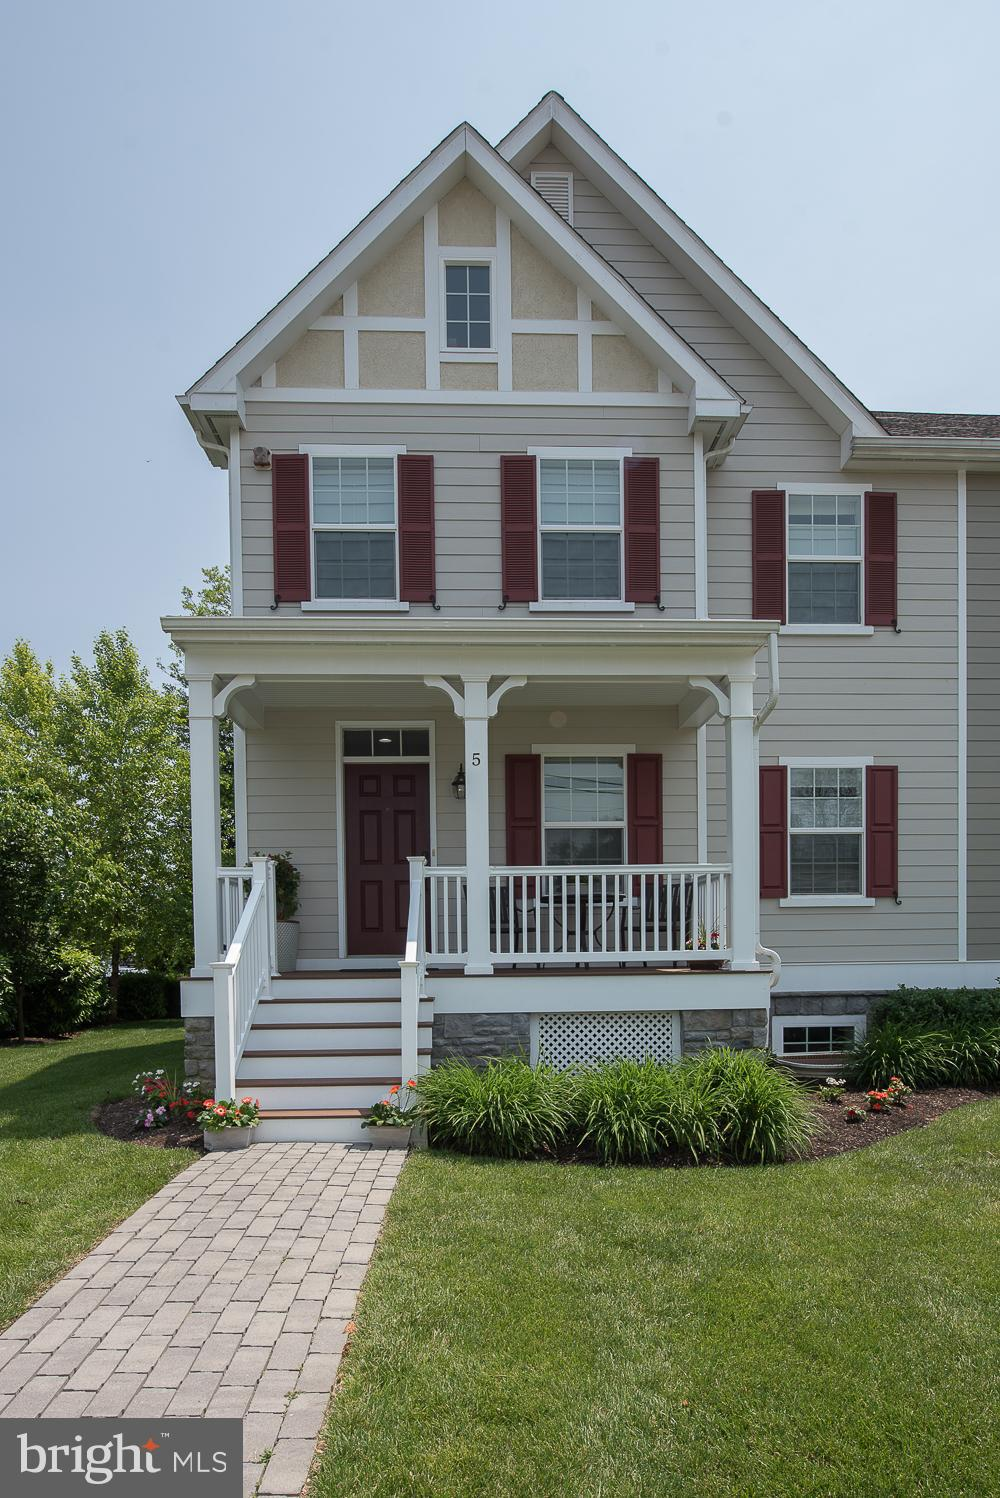 5 S WYOMING AVENUE, ARDMORE, PA 19003